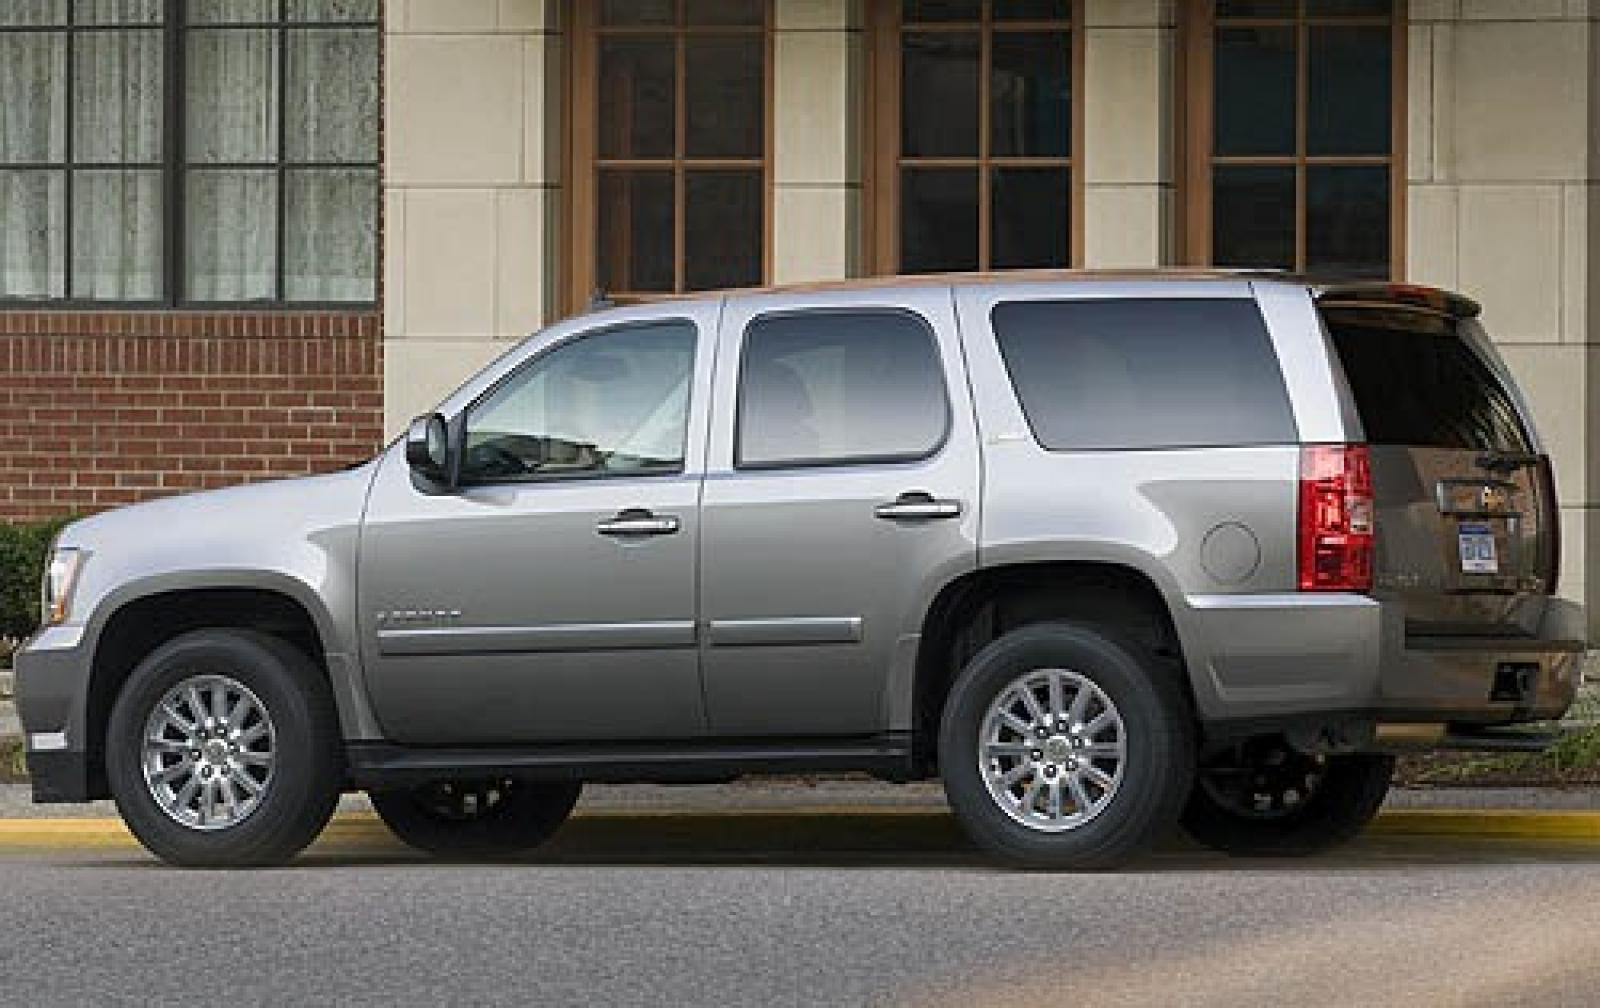 2008 chevrolet tahoe hybrid information and photos zombiedrive. Black Bedroom Furniture Sets. Home Design Ideas